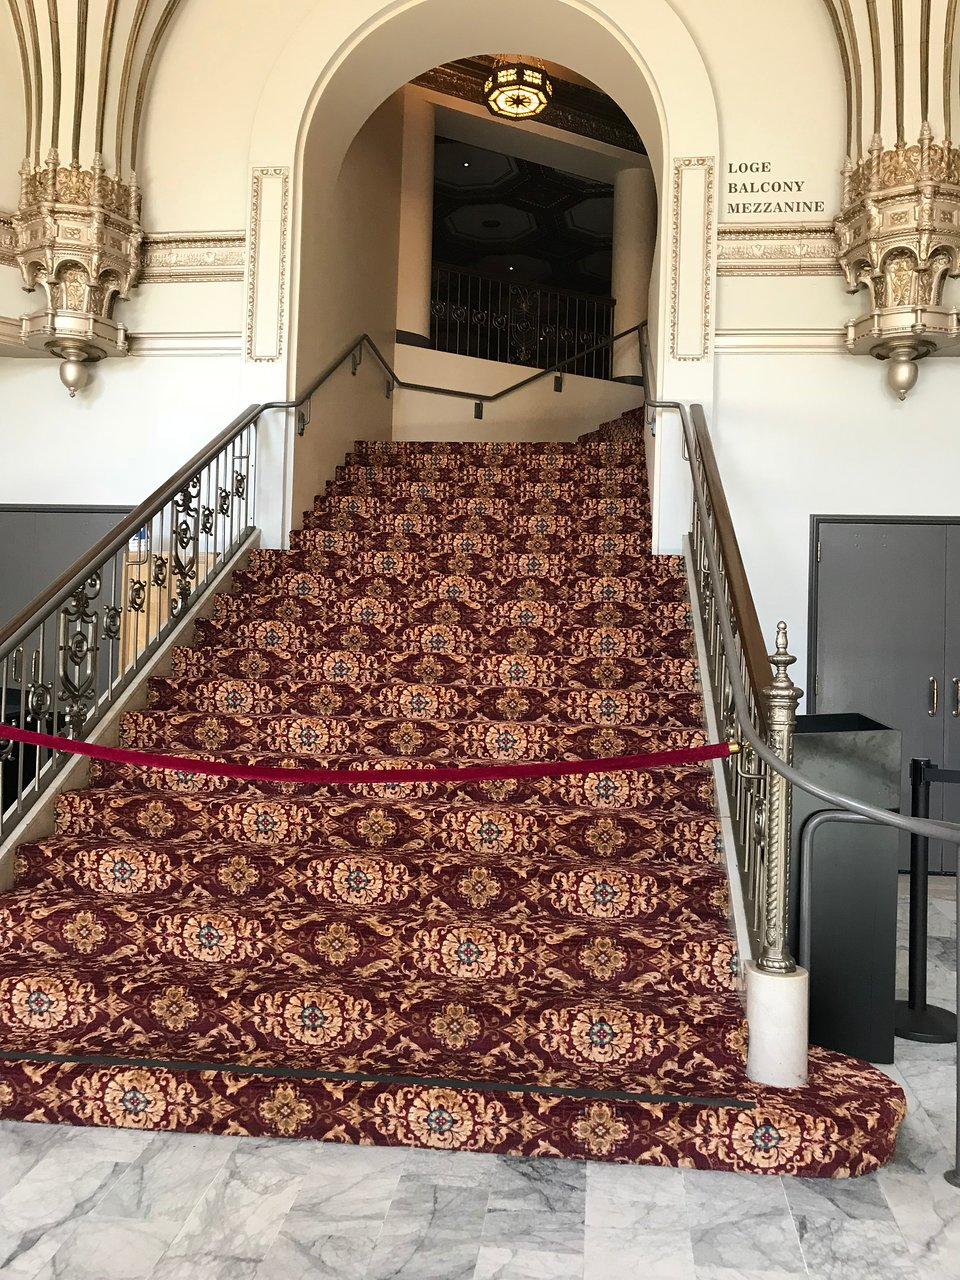 Golden Gate Theatre San Francisco 2019 All You Need To